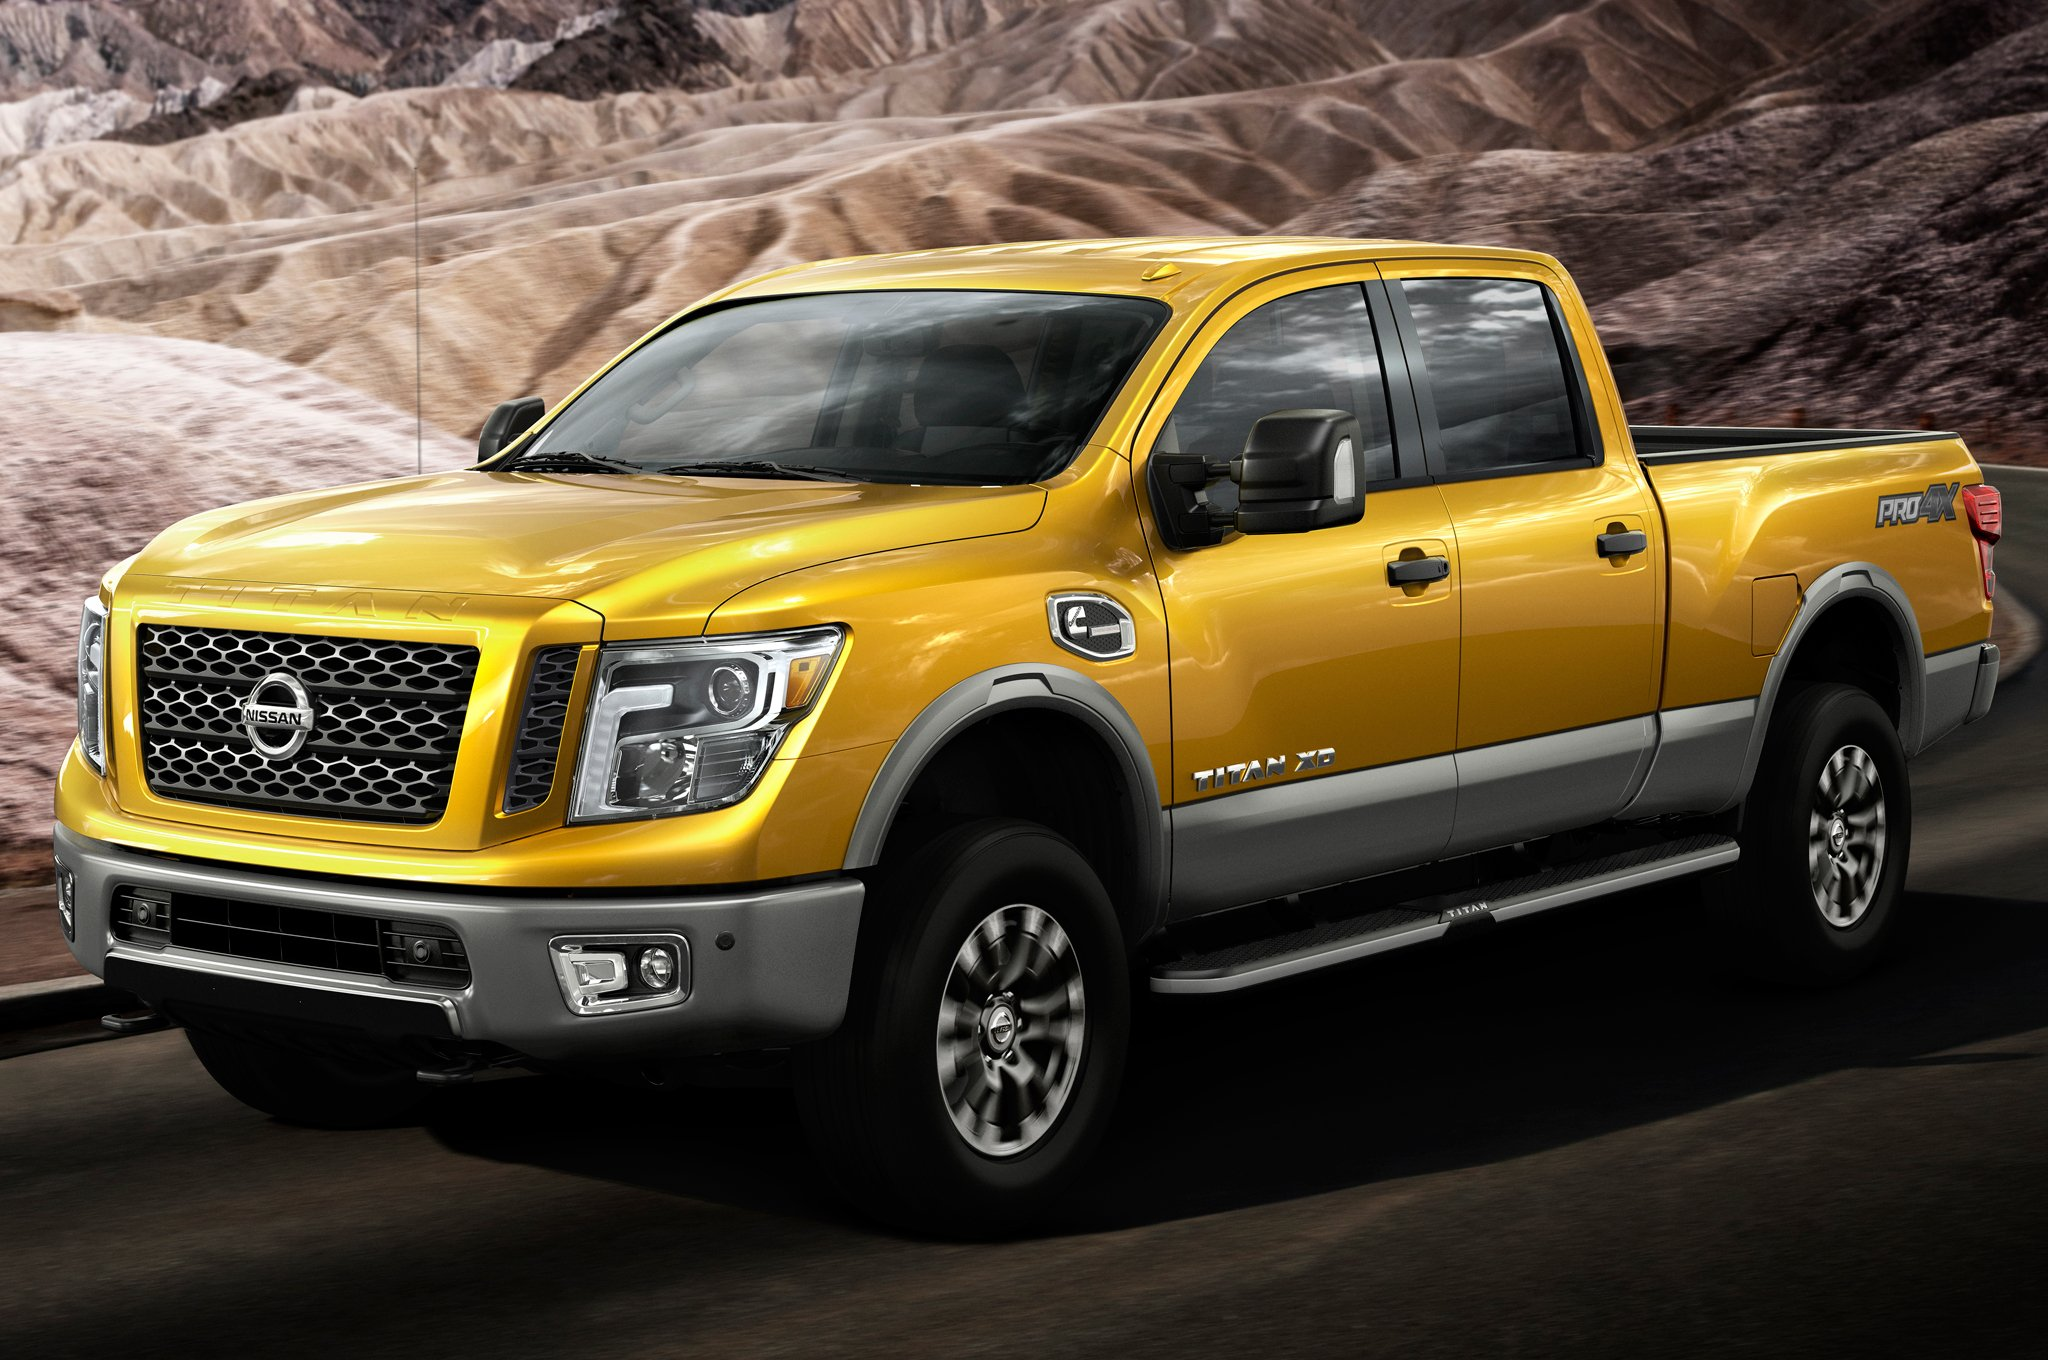 motortrend tests peg diesel titan xd at 20 8 mpg highway 95 octane. Black Bedroom Furniture Sets. Home Design Ideas